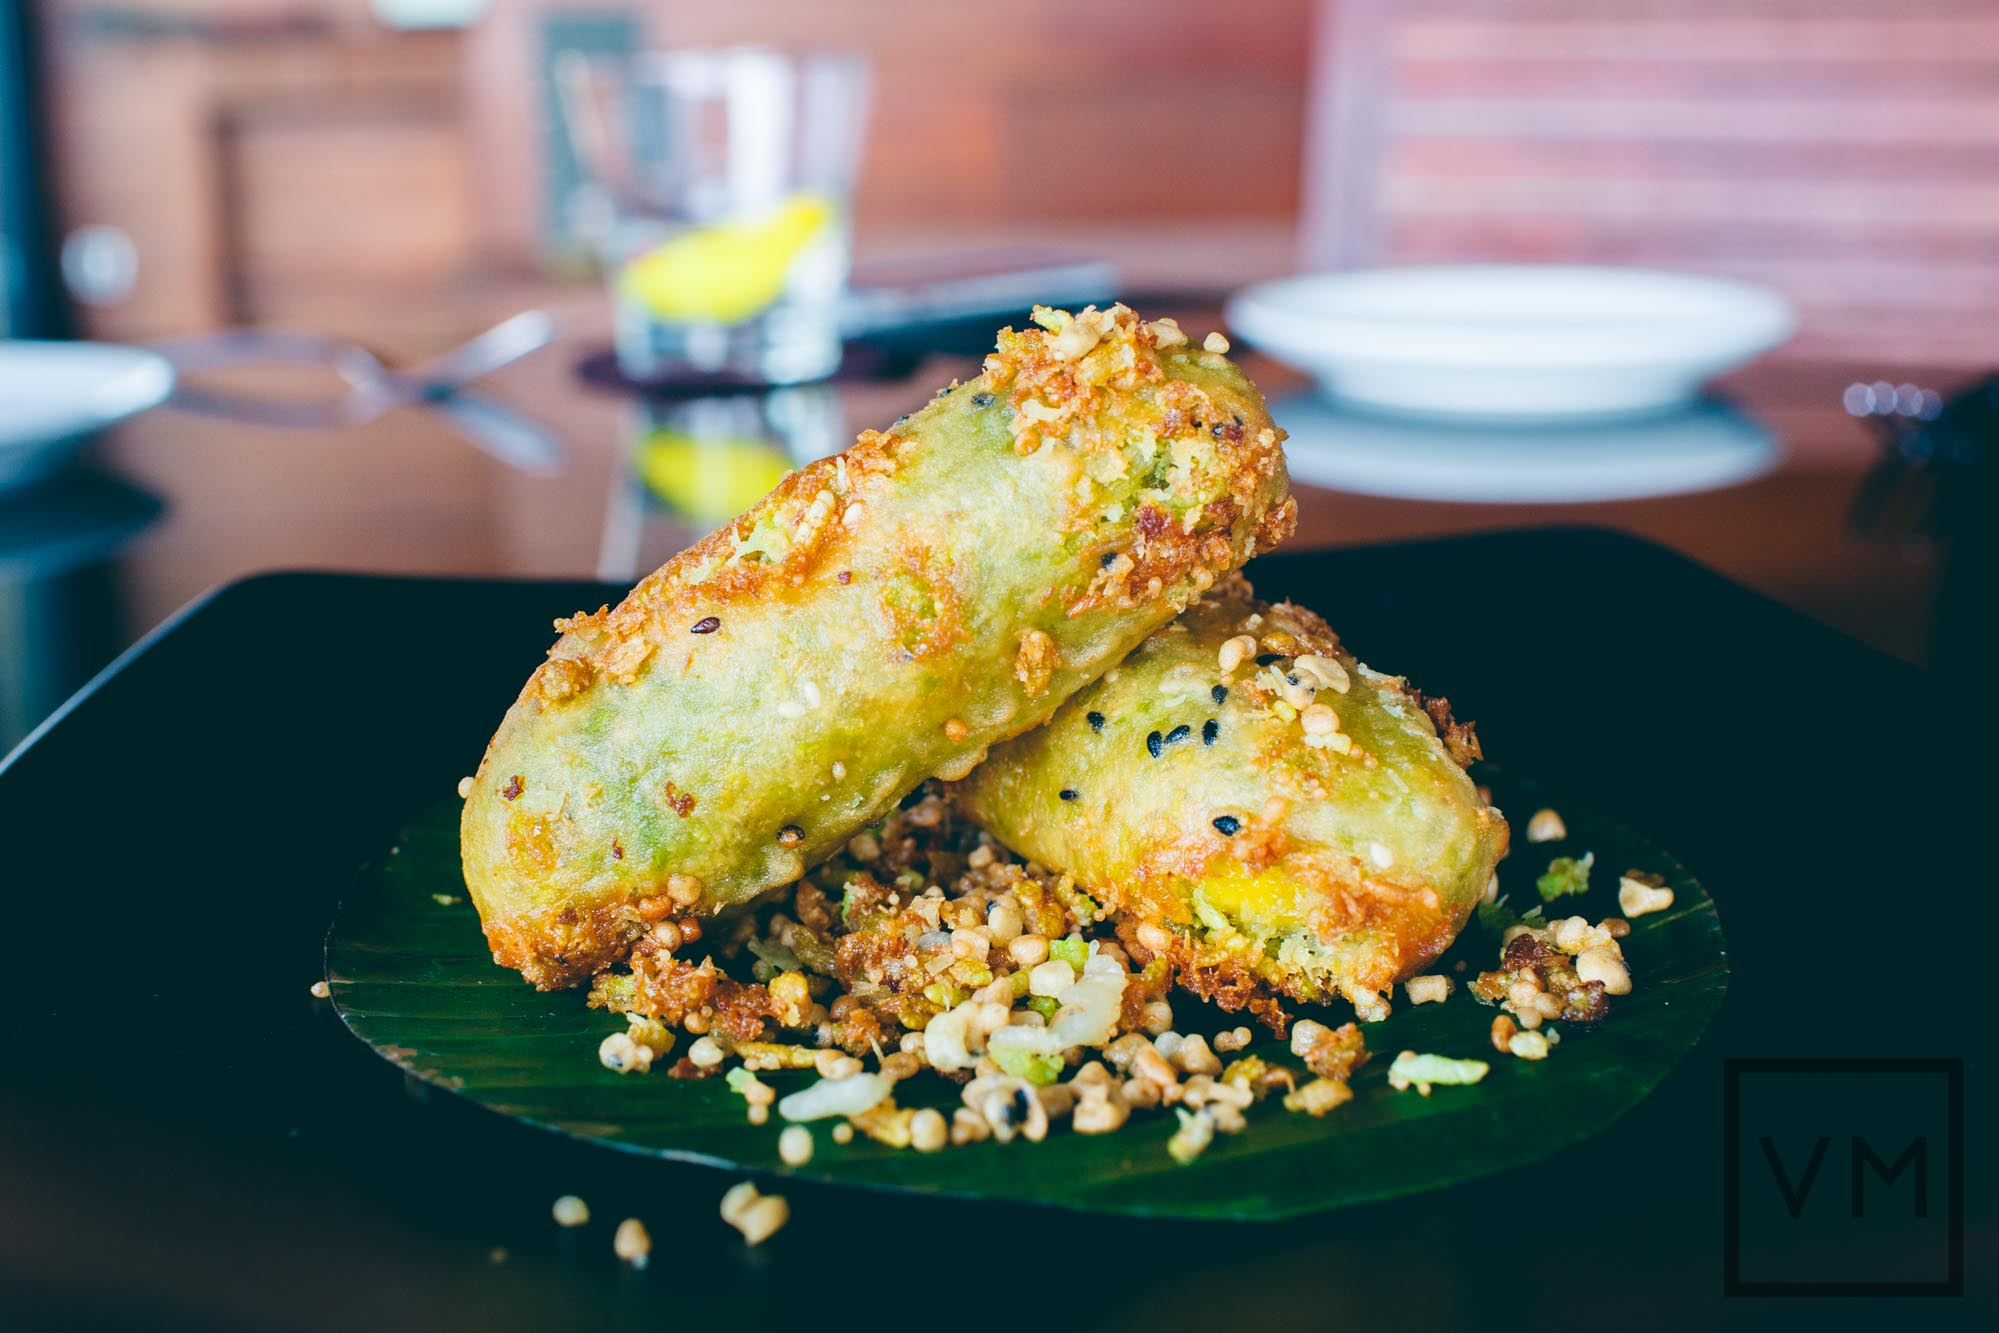 Thai Fried Banana Fritter